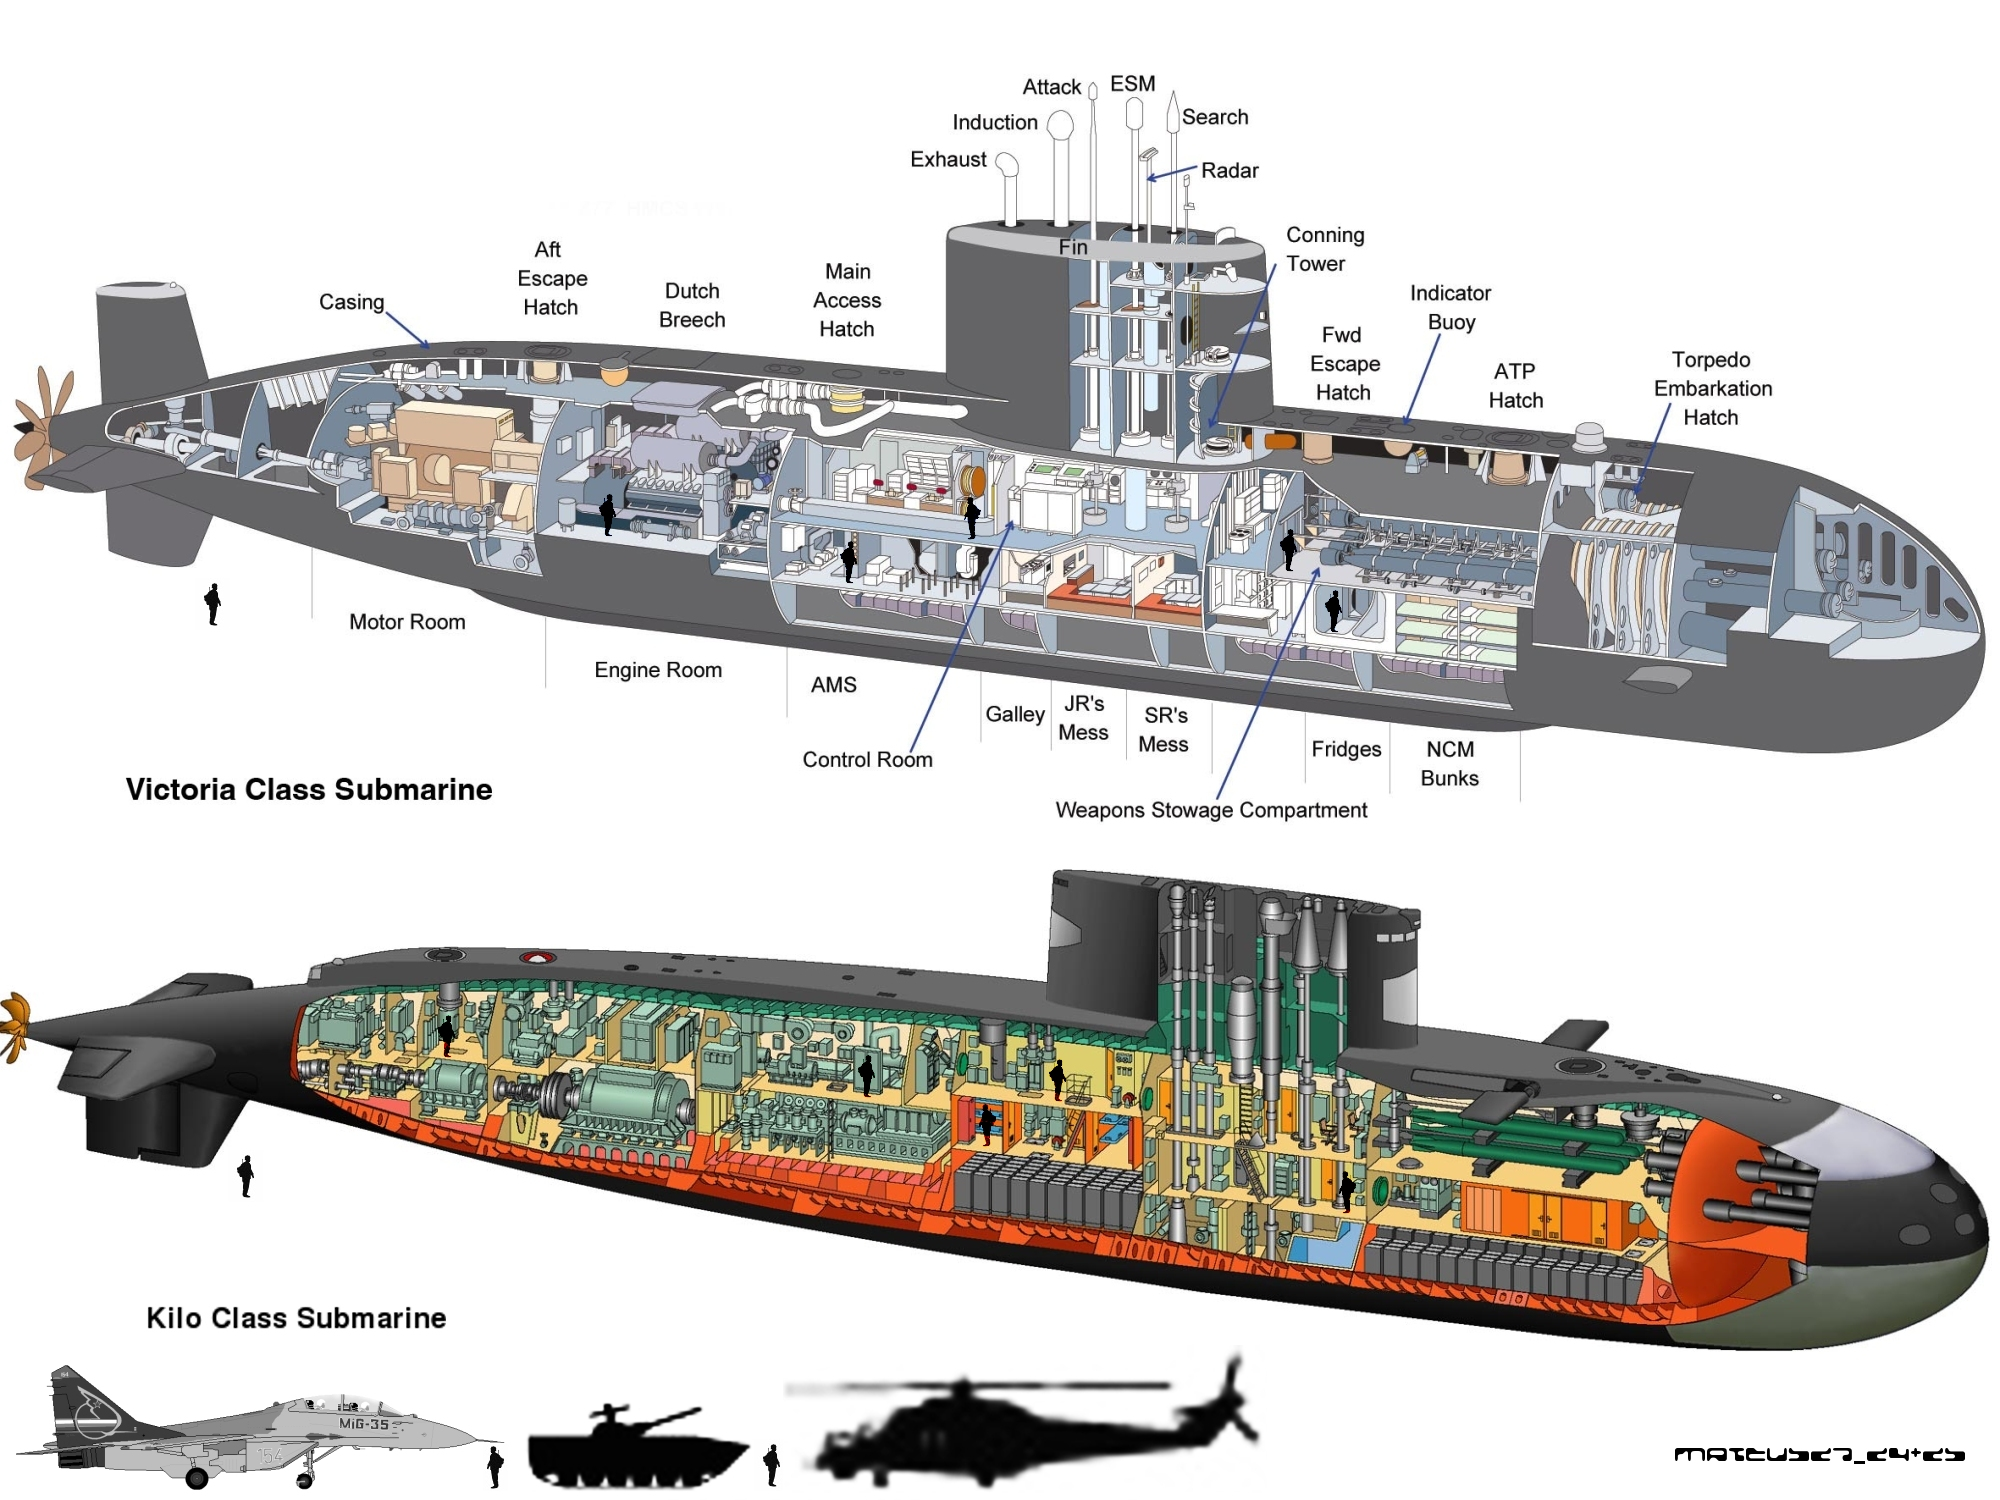 Ford 390 Engine Parts Diagram Submarine Cutaway Drawings Wallpaper 2000x1500 Truck Firing Order